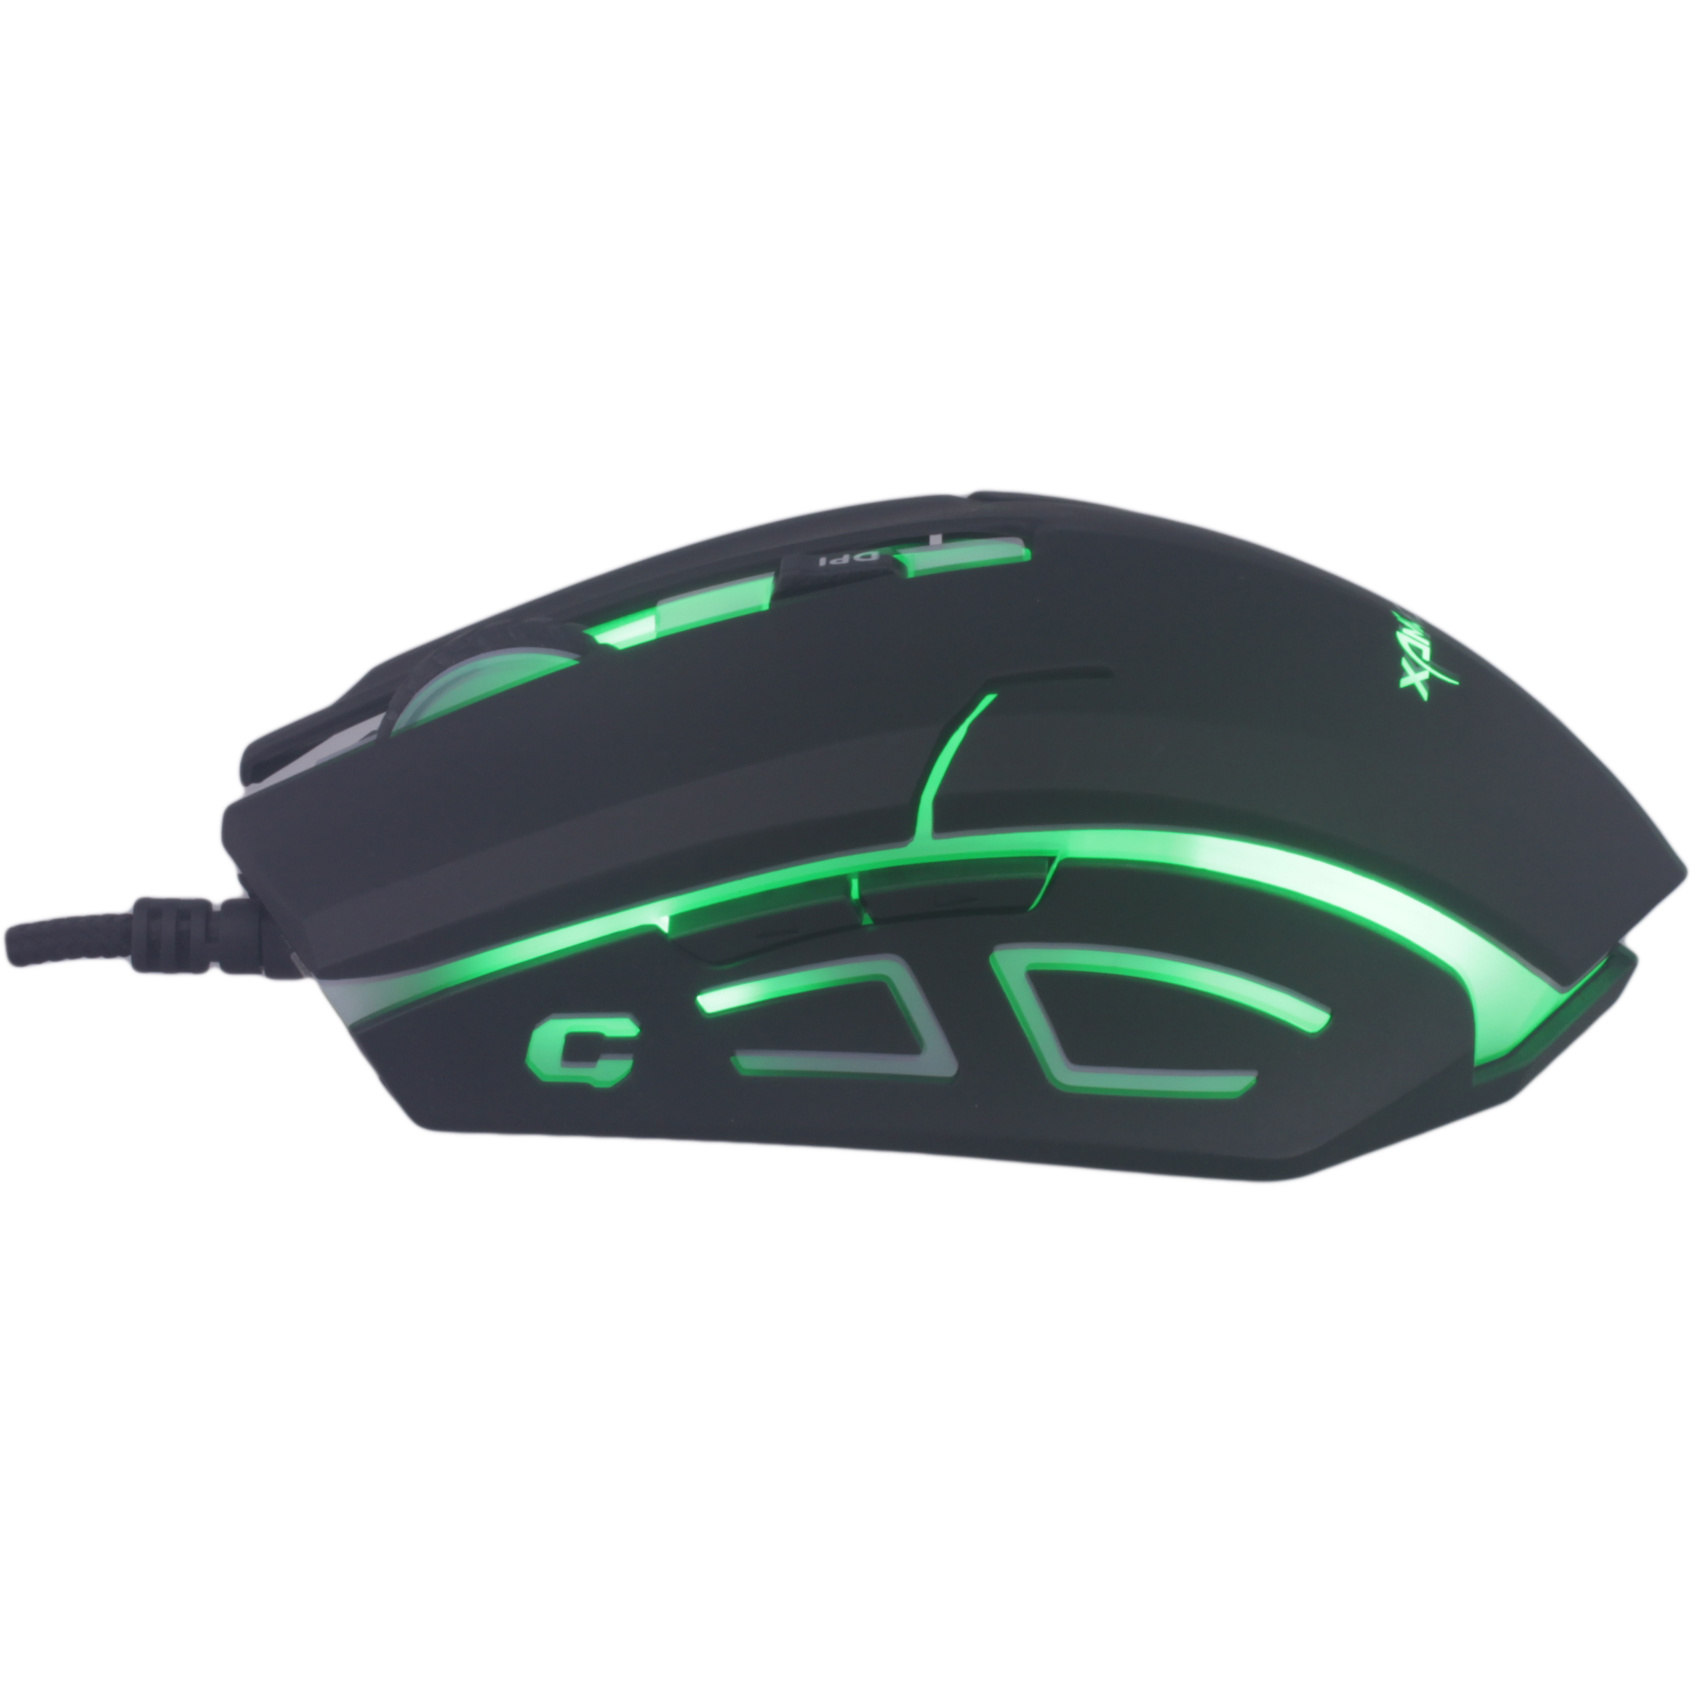 USB Gaming Mouse 3200dpi with Avago 5050 Chipset